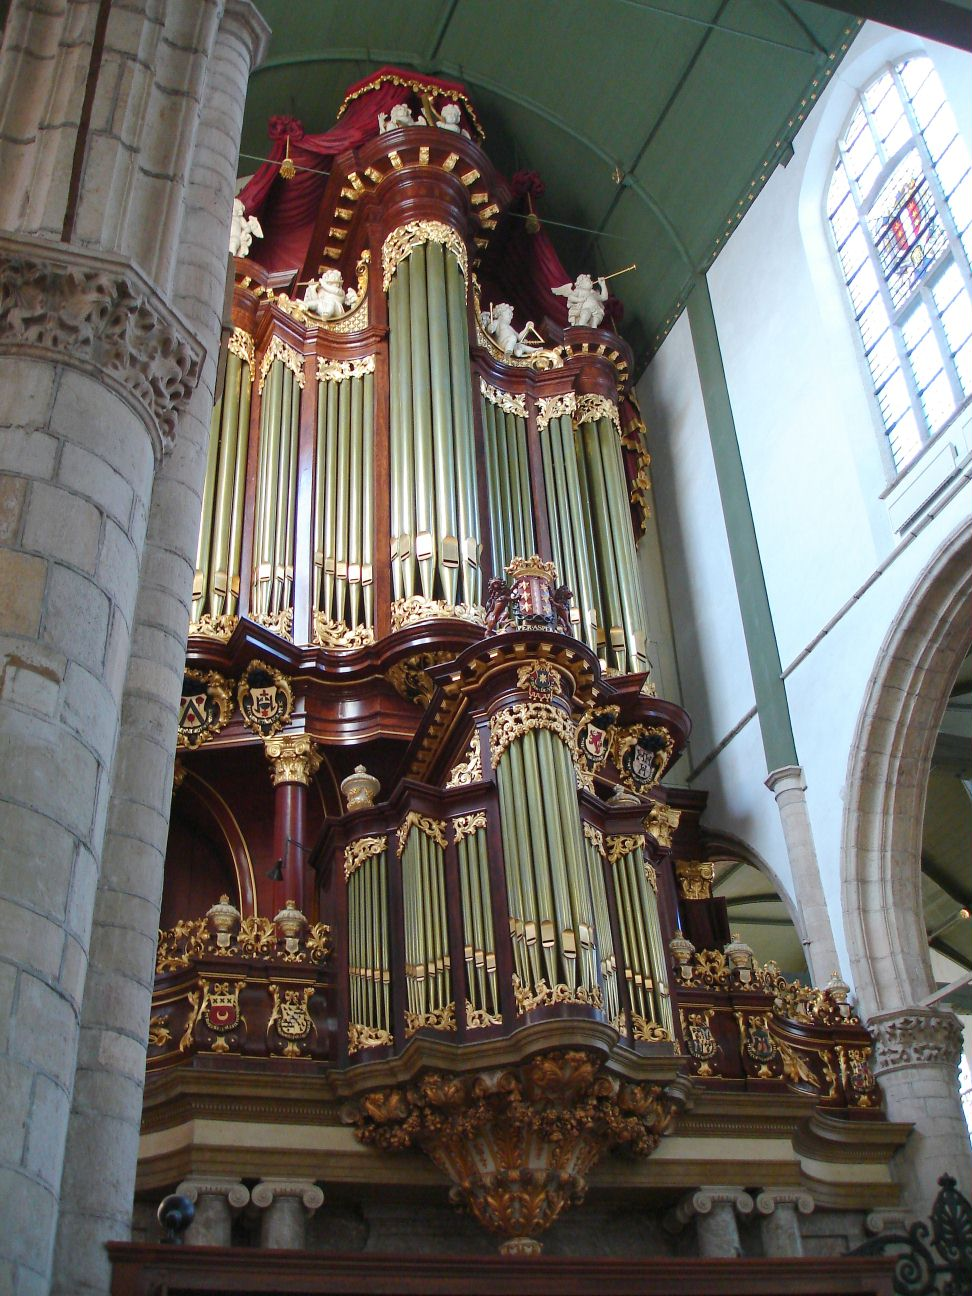 dsc00103.jpg - Church Organ